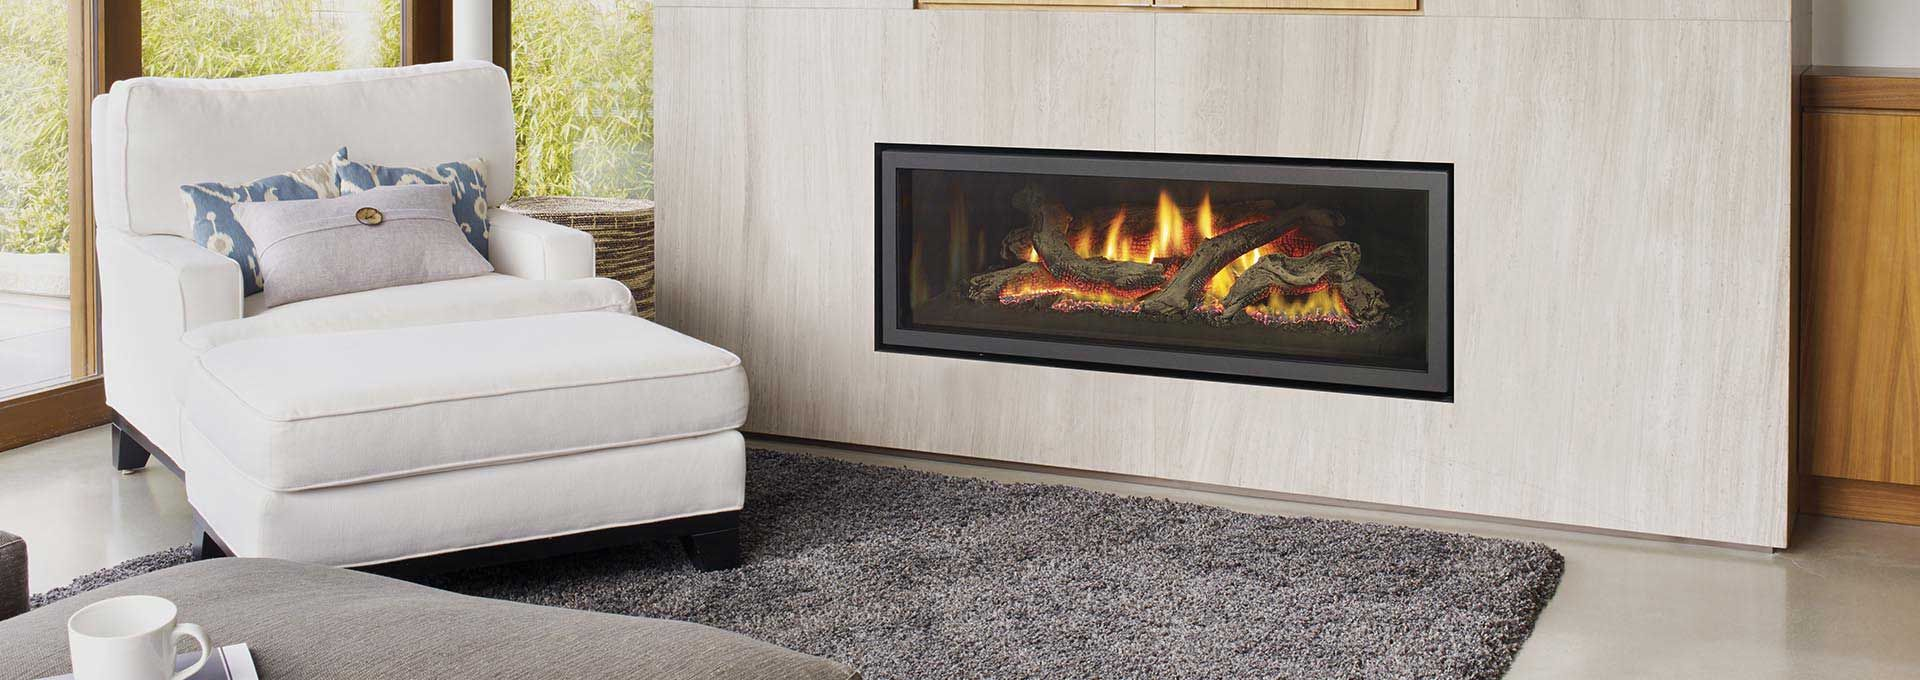 Greenfire Gf1500l Gas Fireplace Shown With Clean Edge Gas